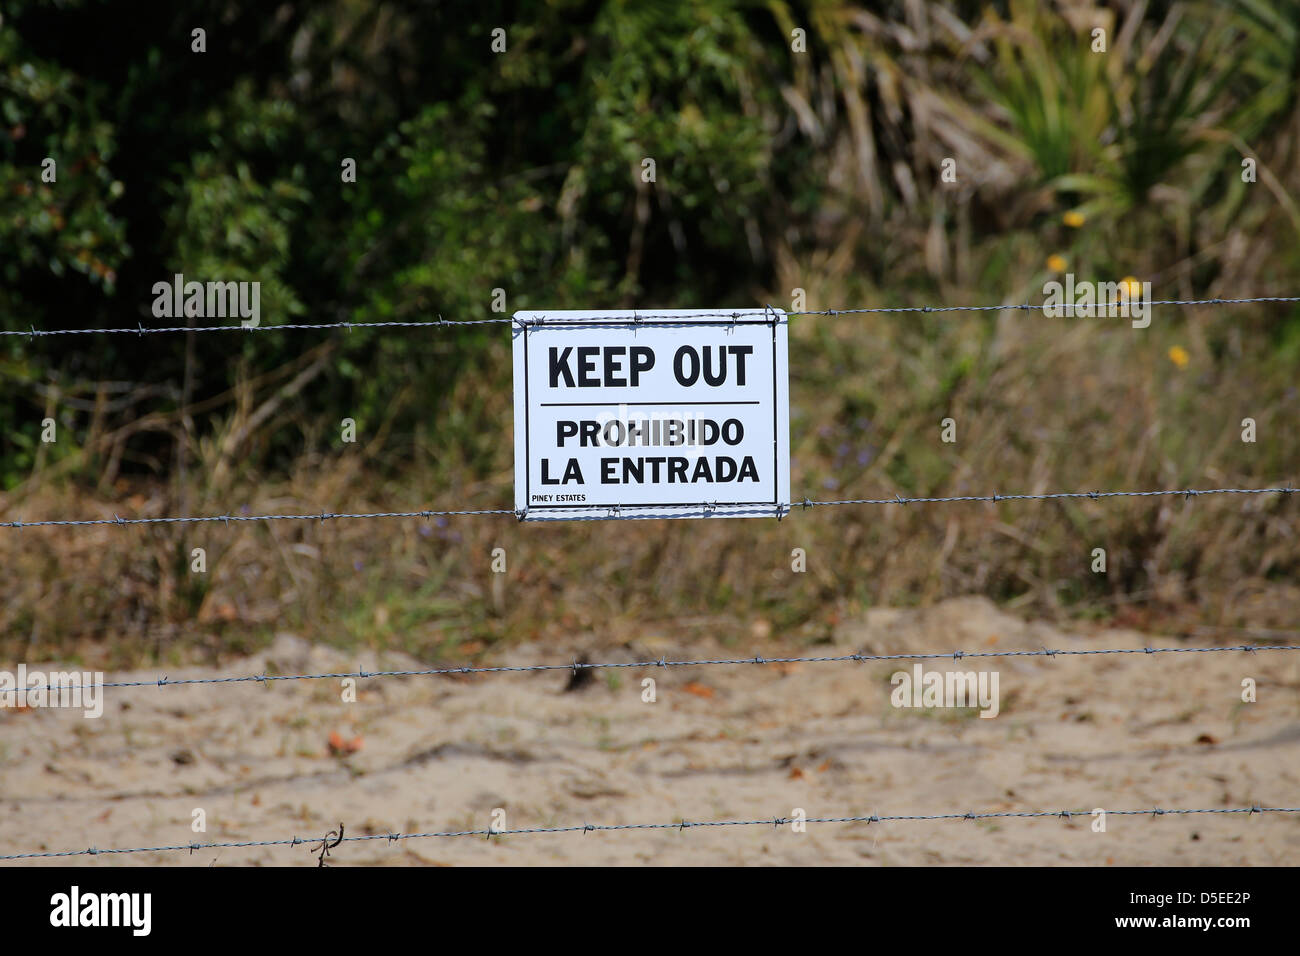 a sign on a barbed wire fence that says KEEP OUT and Prohibido la entrada in spanish - Stock Image